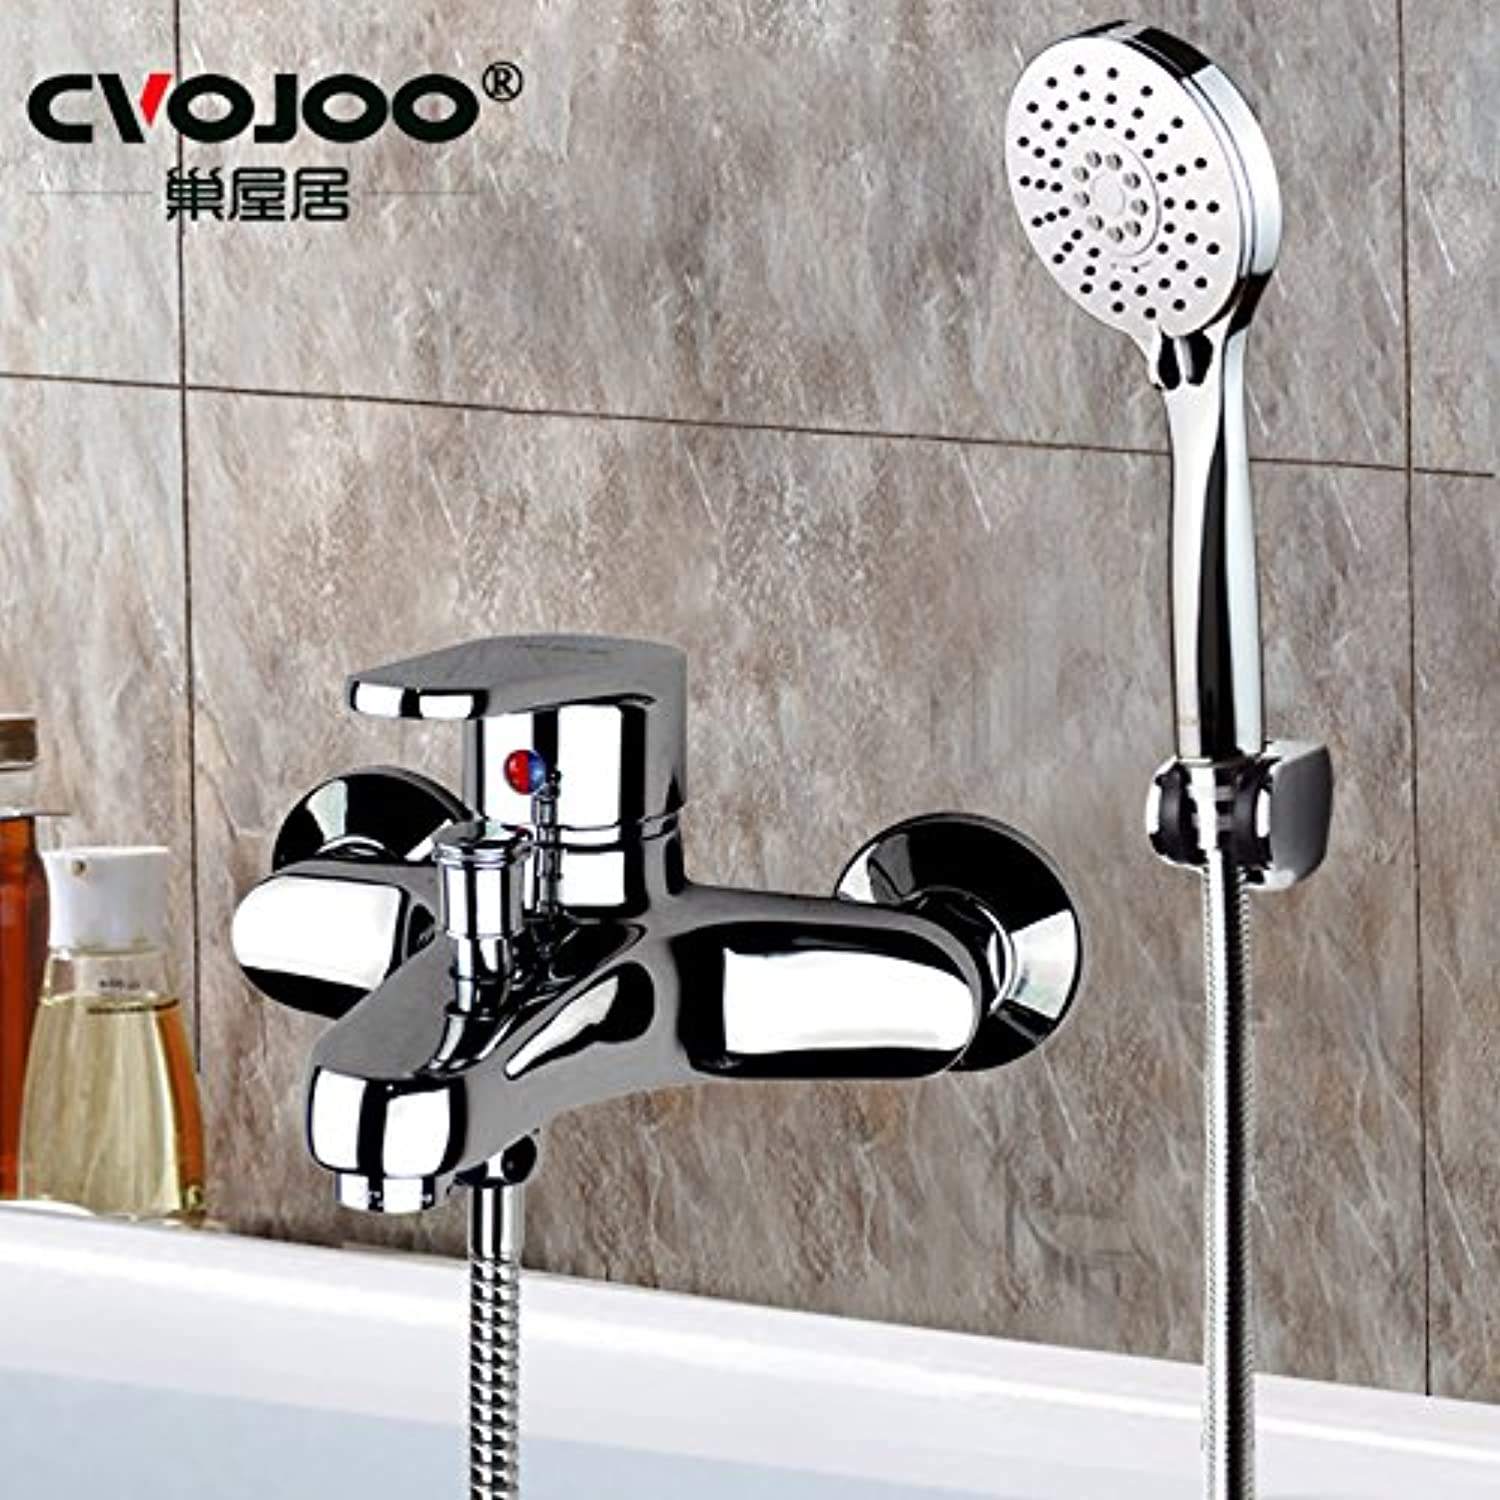 Hlluya Professional Sink Mixer Tap Kitchen Faucet The bathroom shower faucet full copper hot and cold water shower Kit Shower Water mixing valve pressure sprinklers, Kit